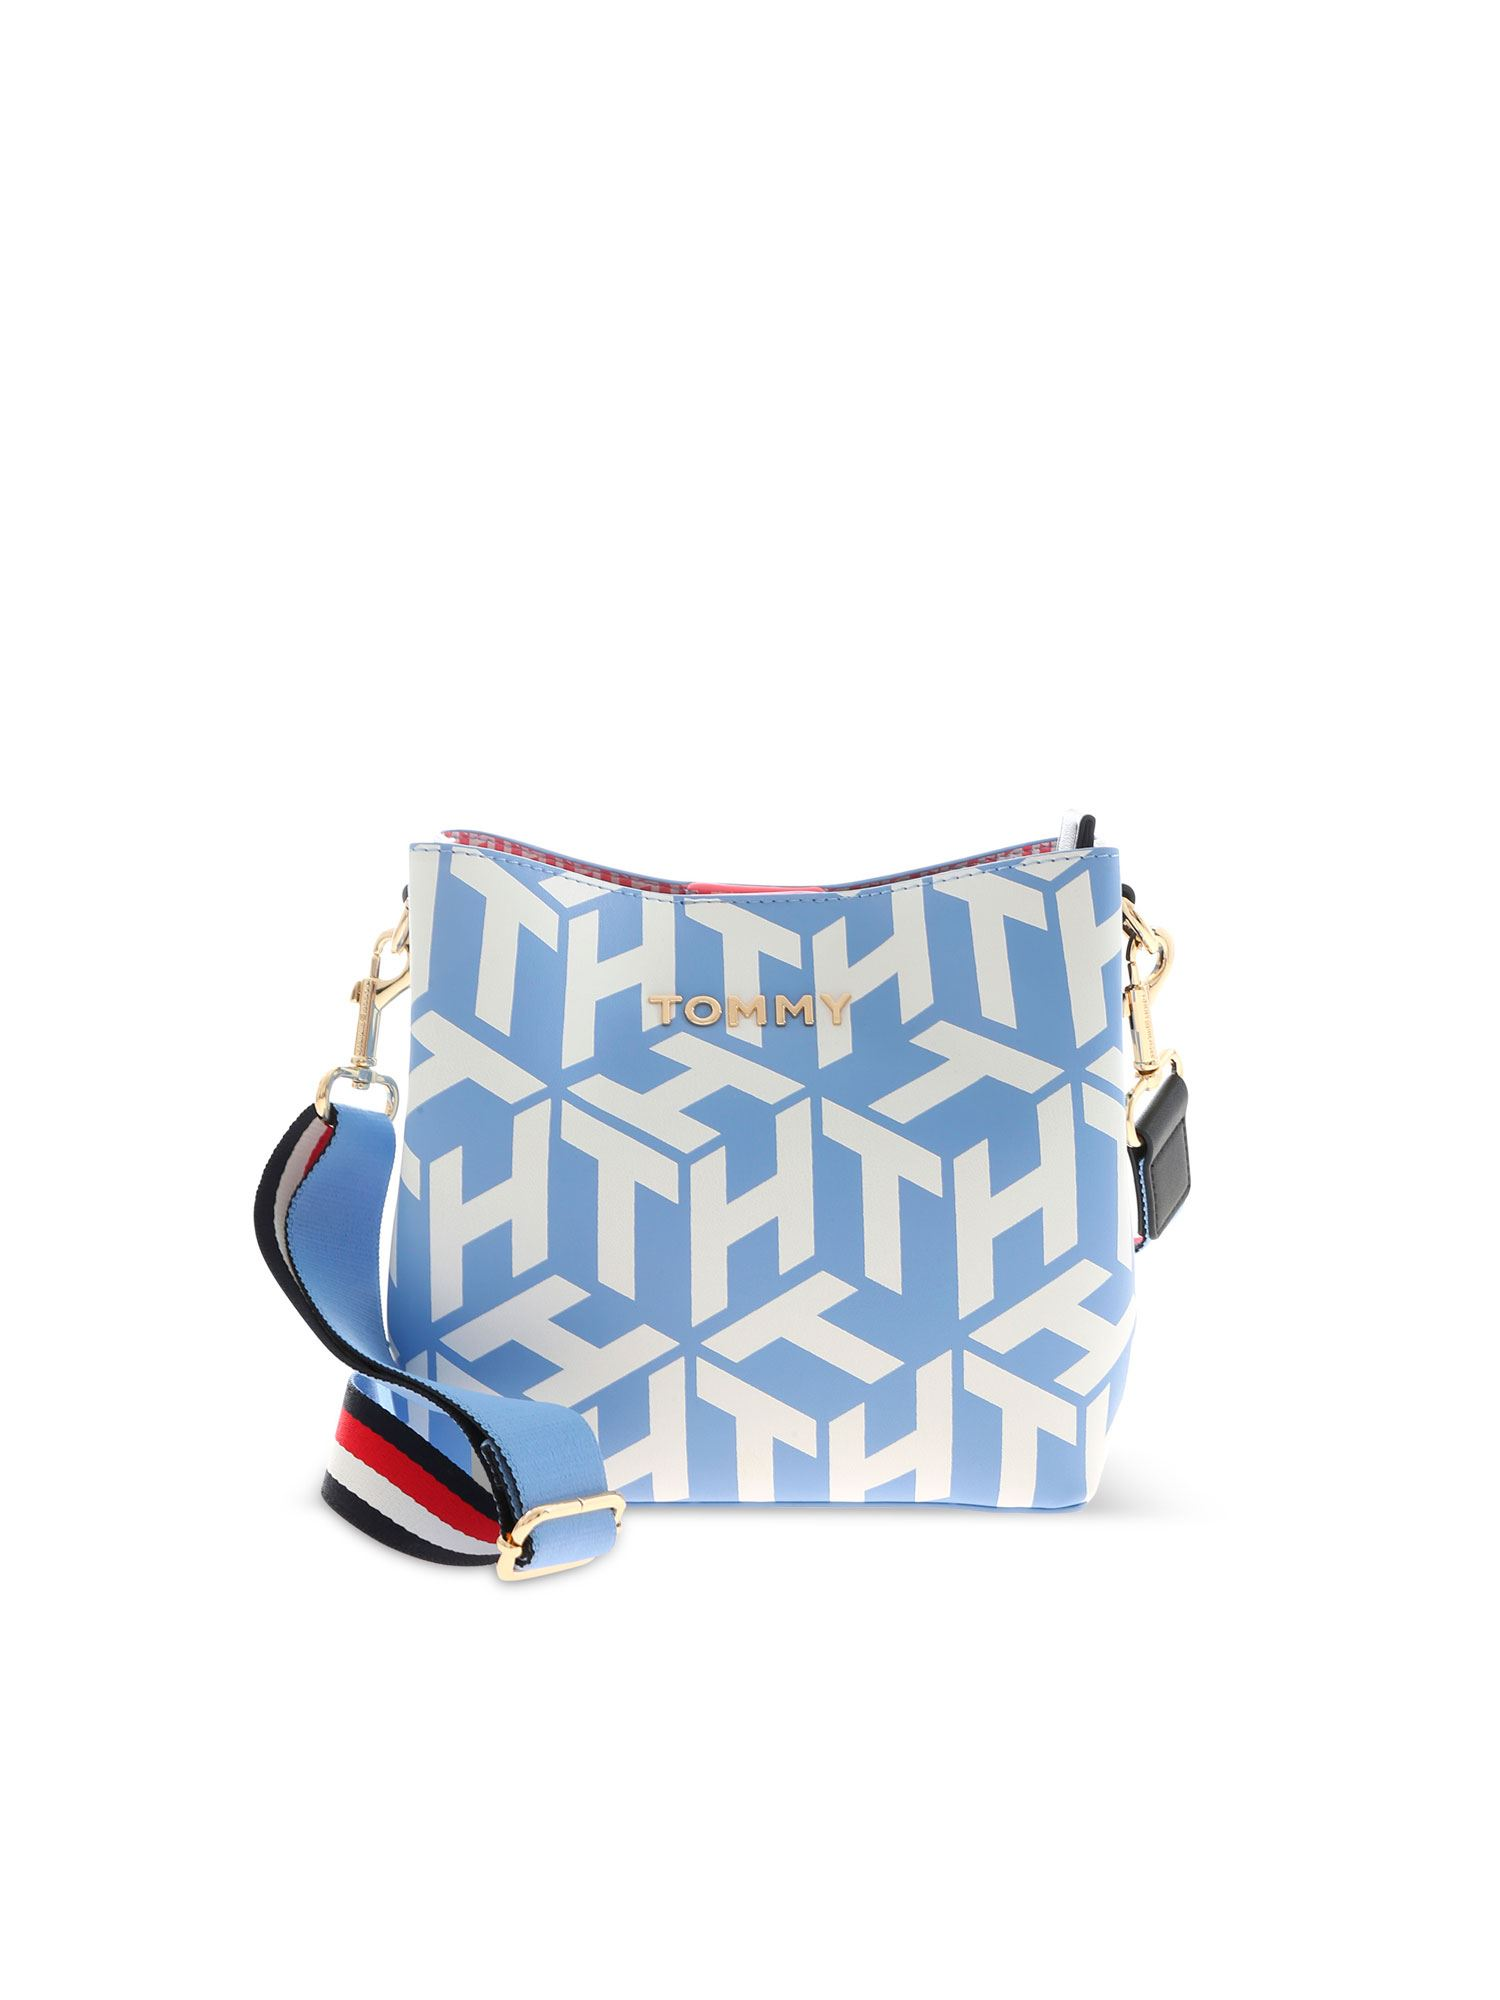 Tommy Hilfiger ICONIC TOMMY BUCKET BAG IN LIGHT BLUE AND WHITE